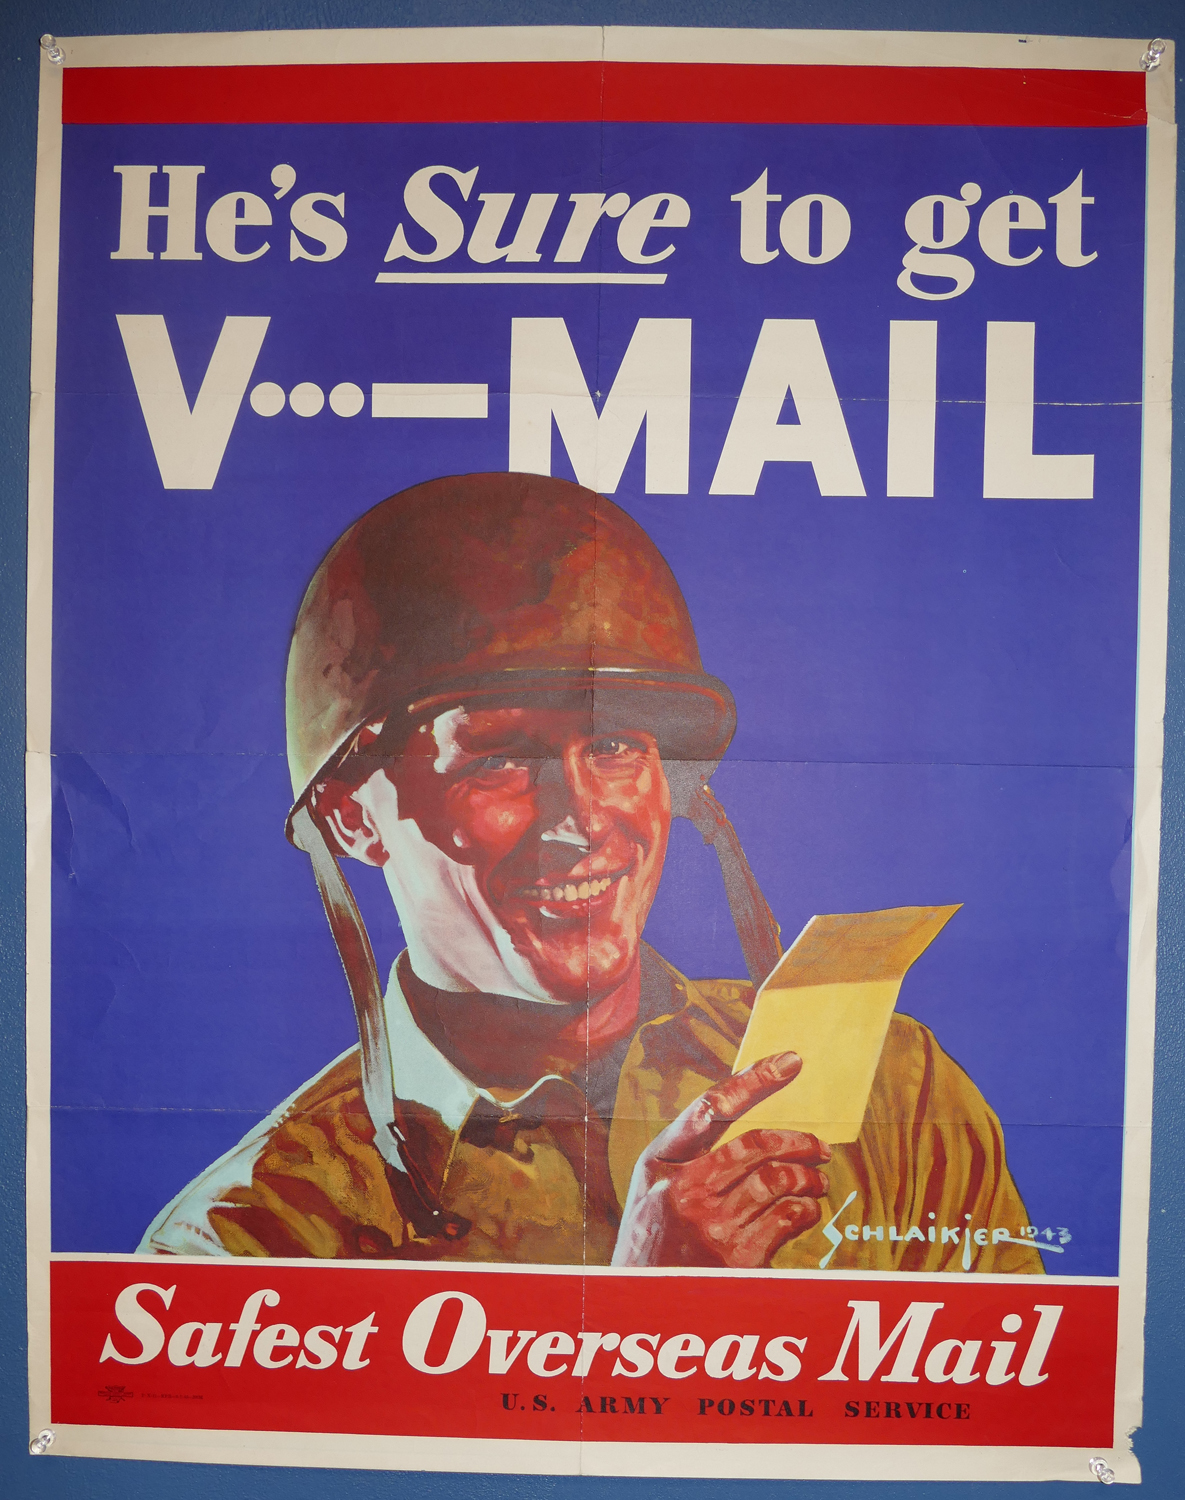 hes_sure_to_get_your_vmail_28_x_22_poster